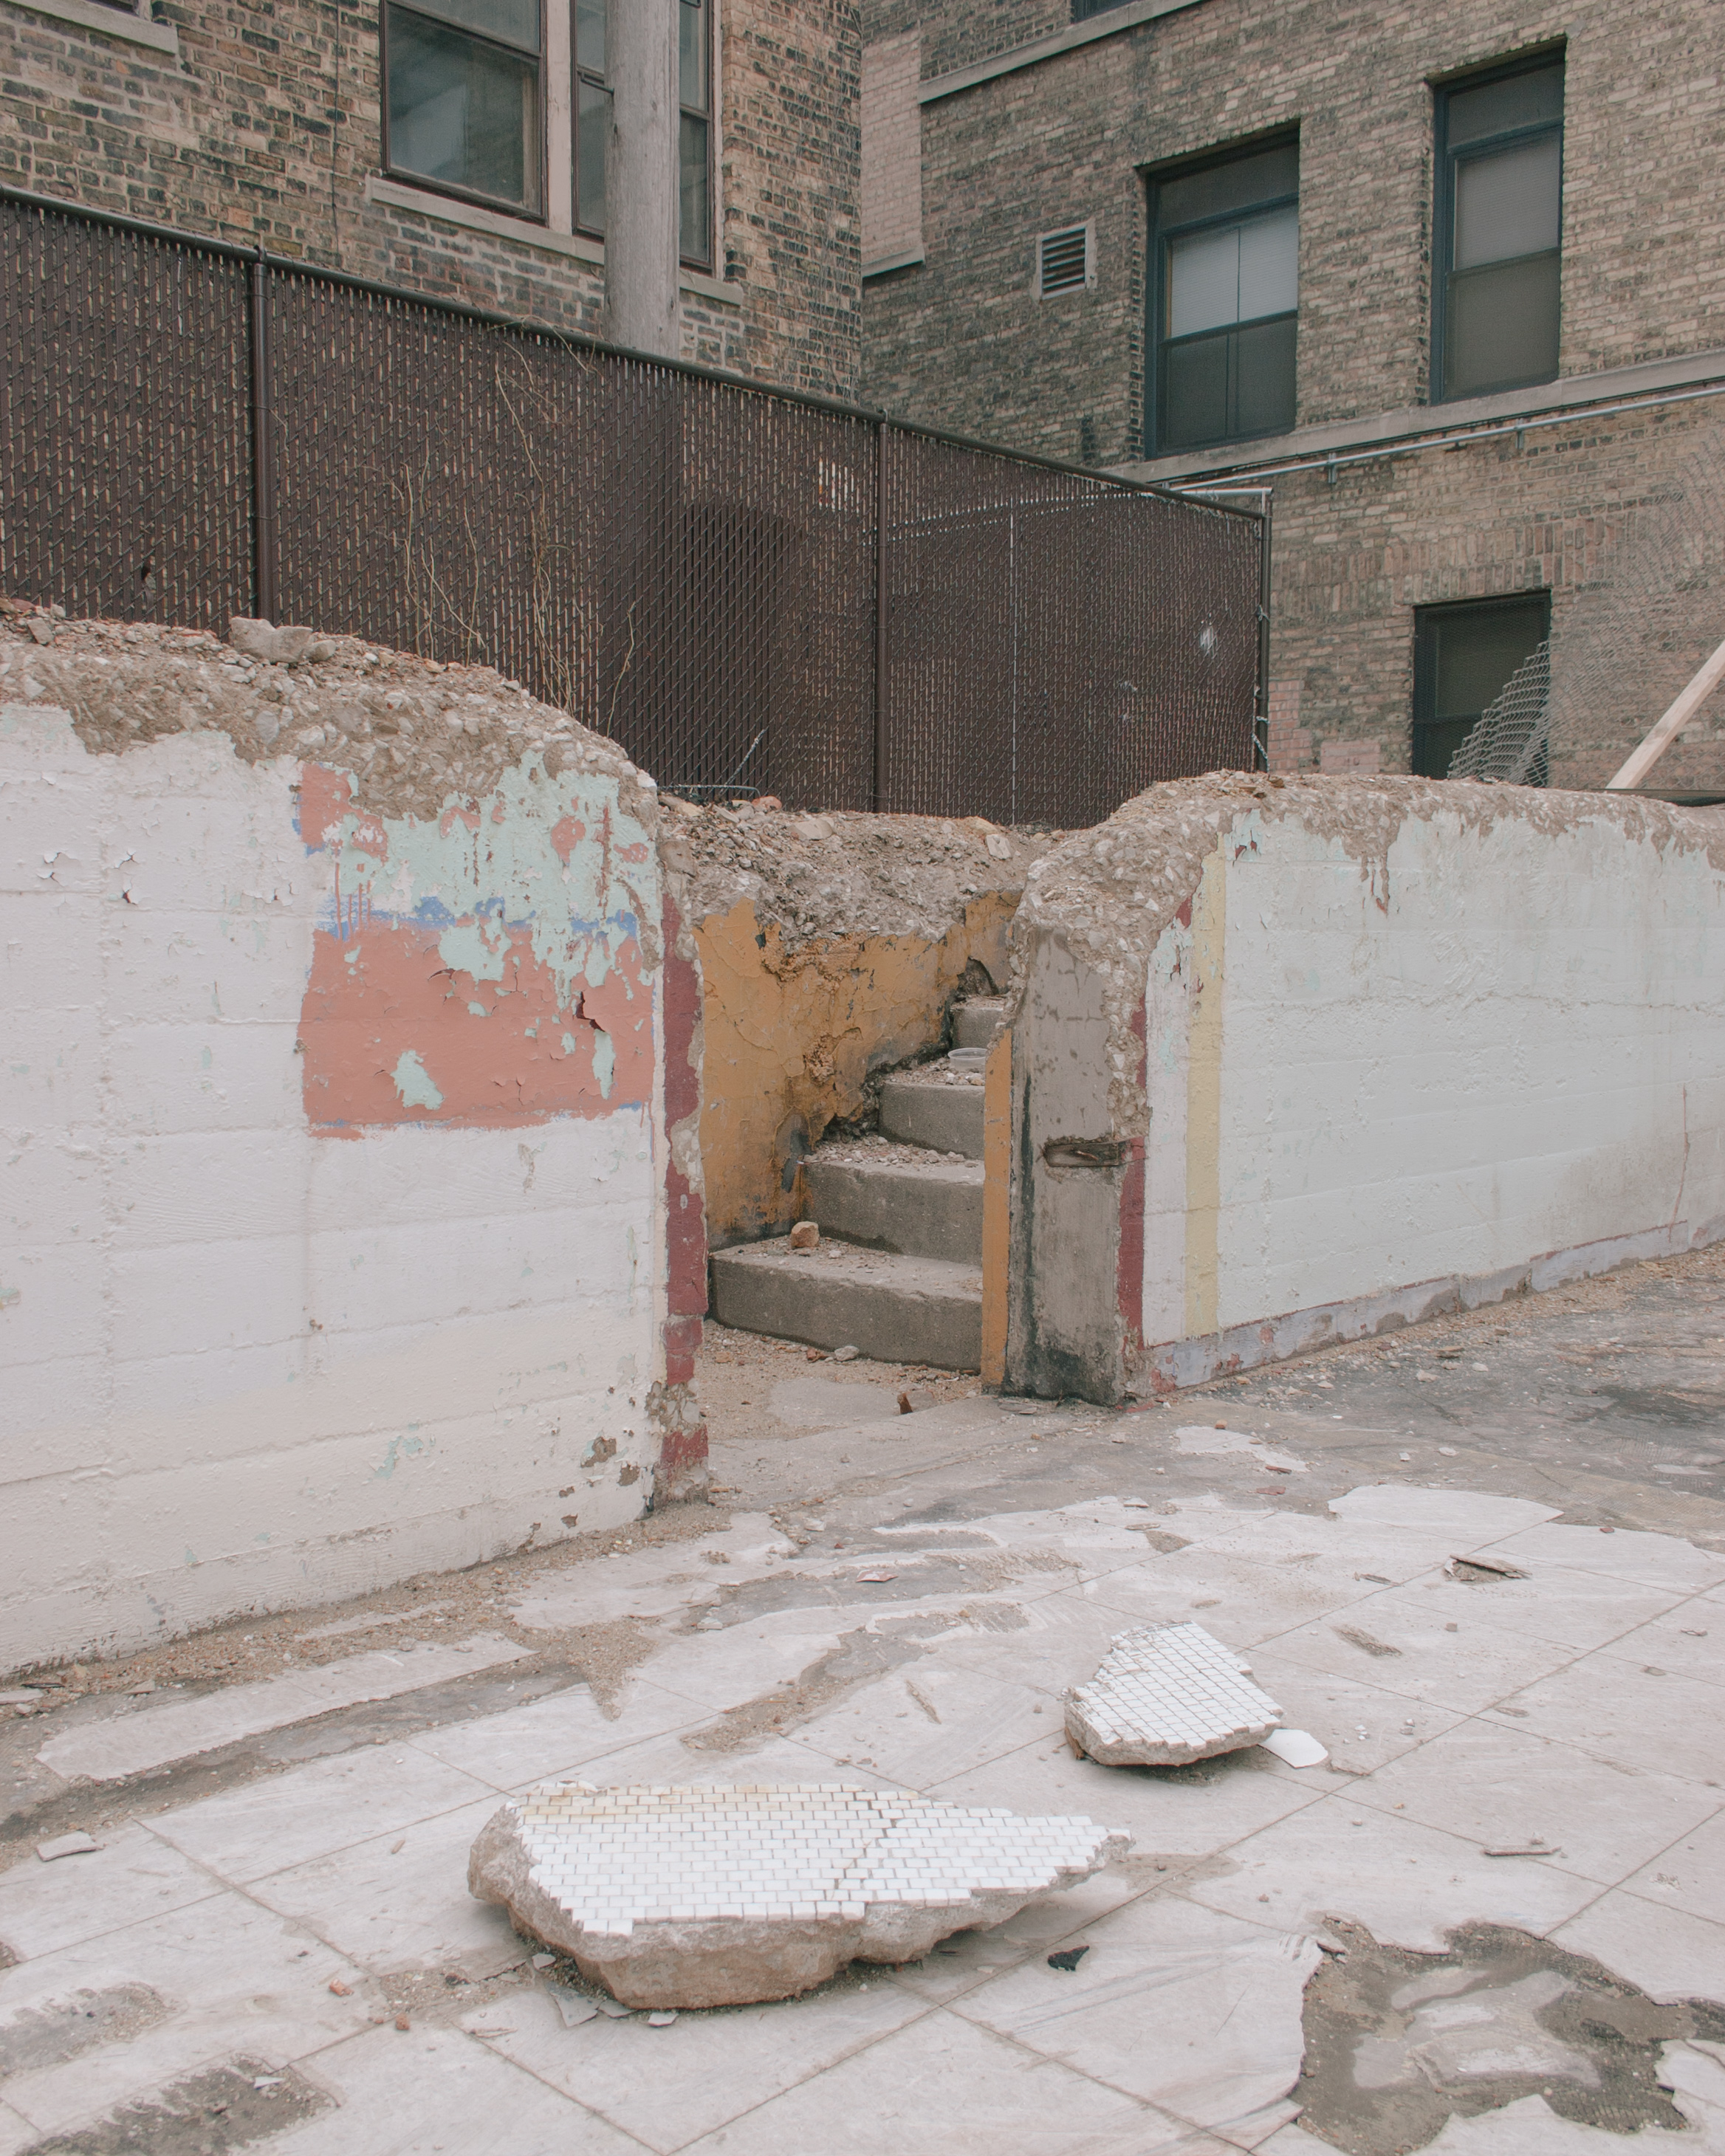 Stairs that head to no where in Chicago, Illinois